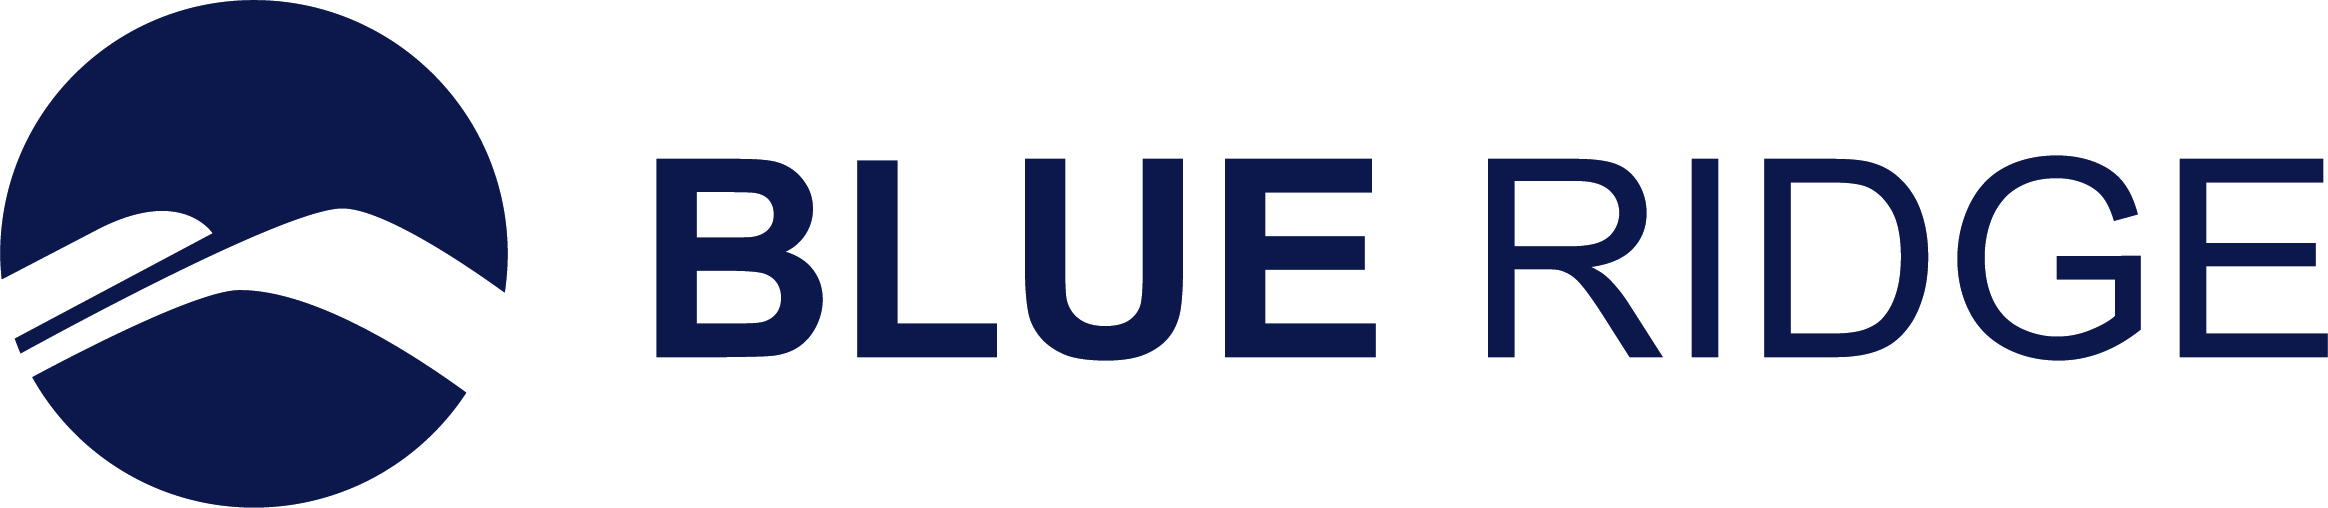 Blue Ridge Announces Partnership with Körber to Tightly Connect Supply Chain Planning with Execution